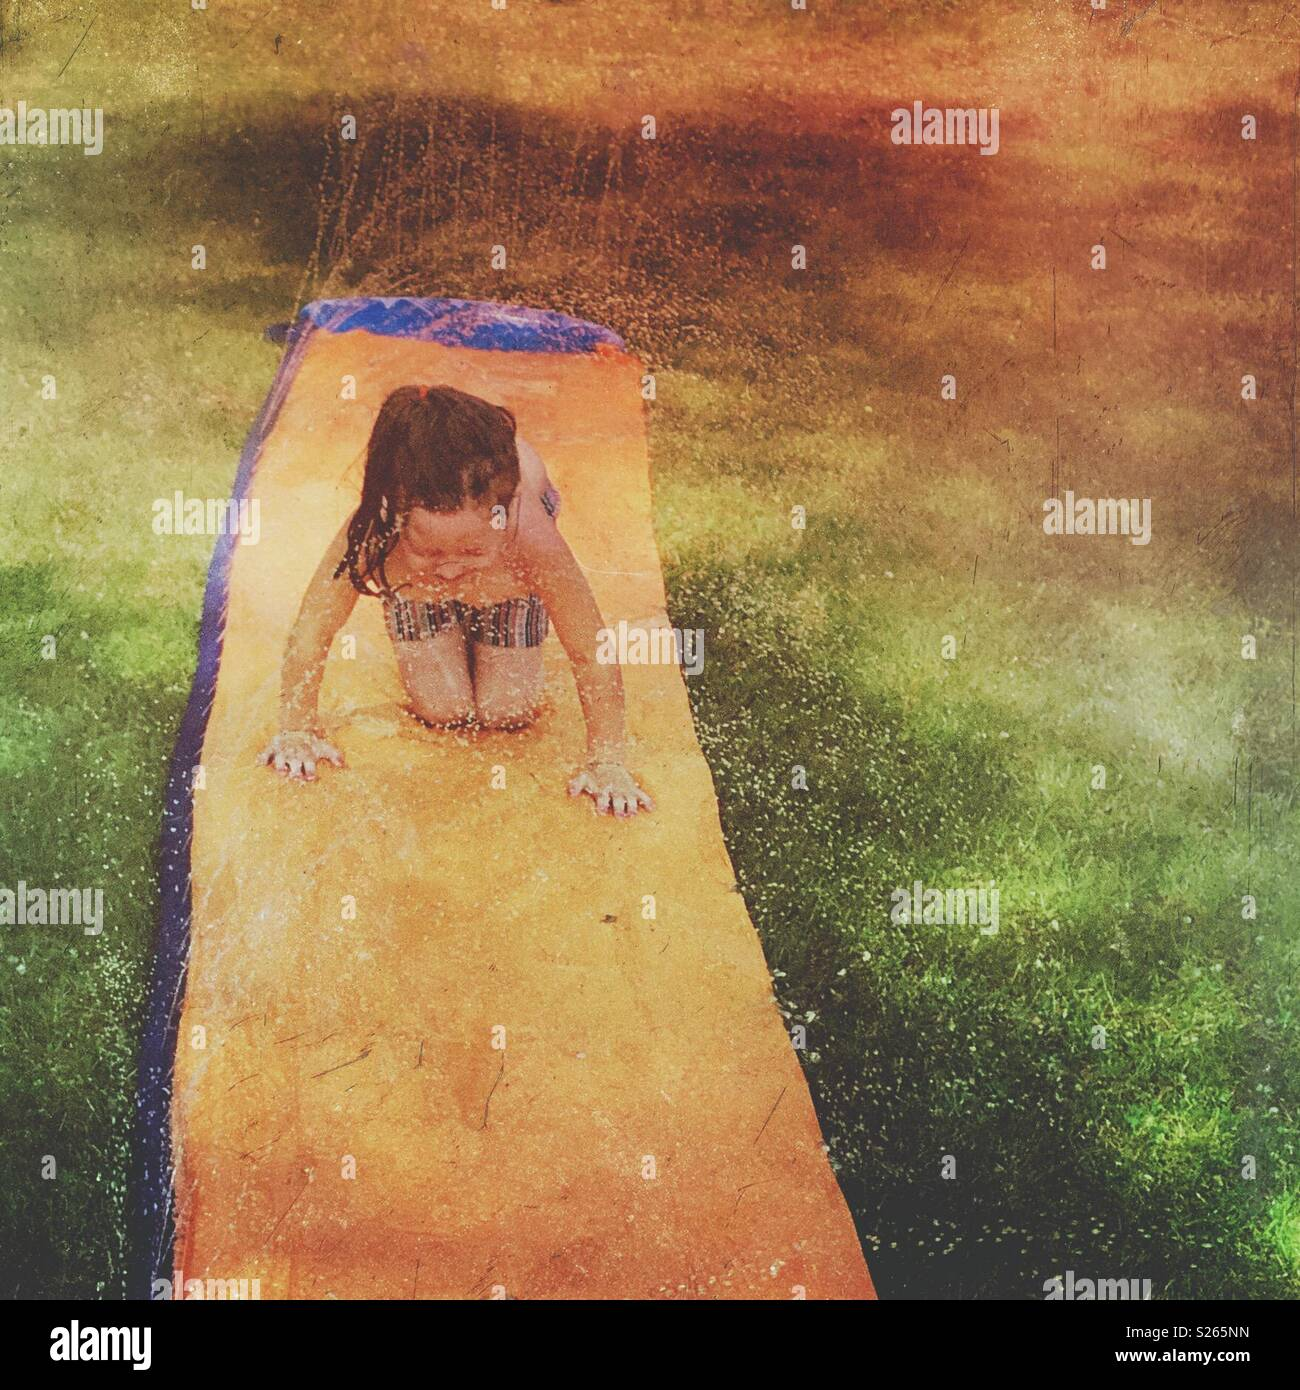 Little girl playing on a slip and slide - Stock Image